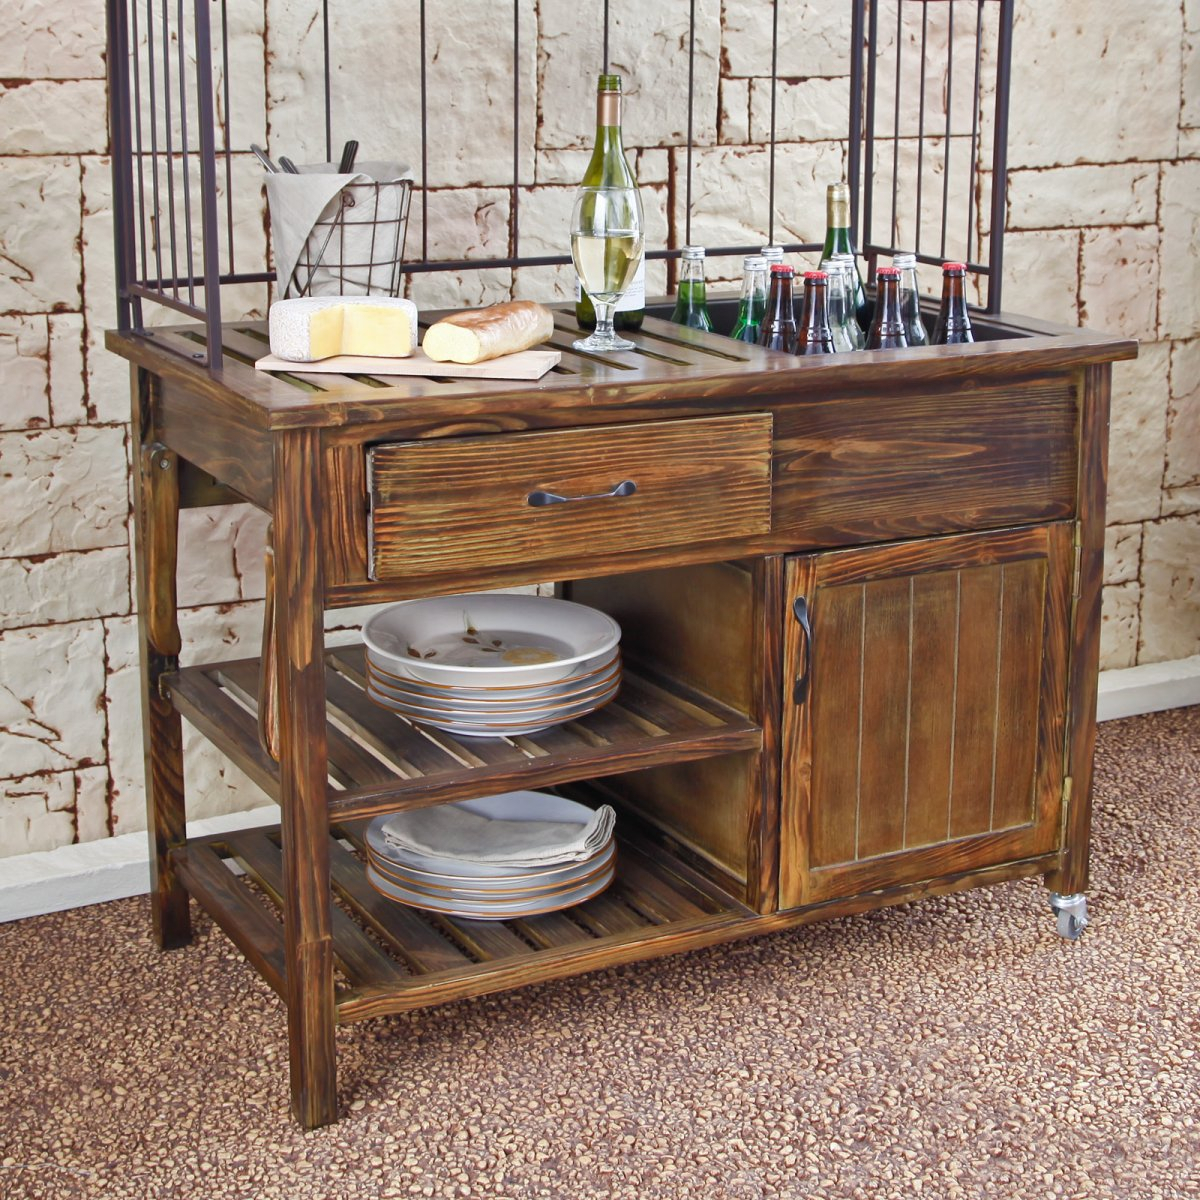 outdoor sideboard buffet table modern coffee tables and accent well patio cabinet large wall clocks grey wood lamp with usb port bedside mission style lamps small kitchen leather